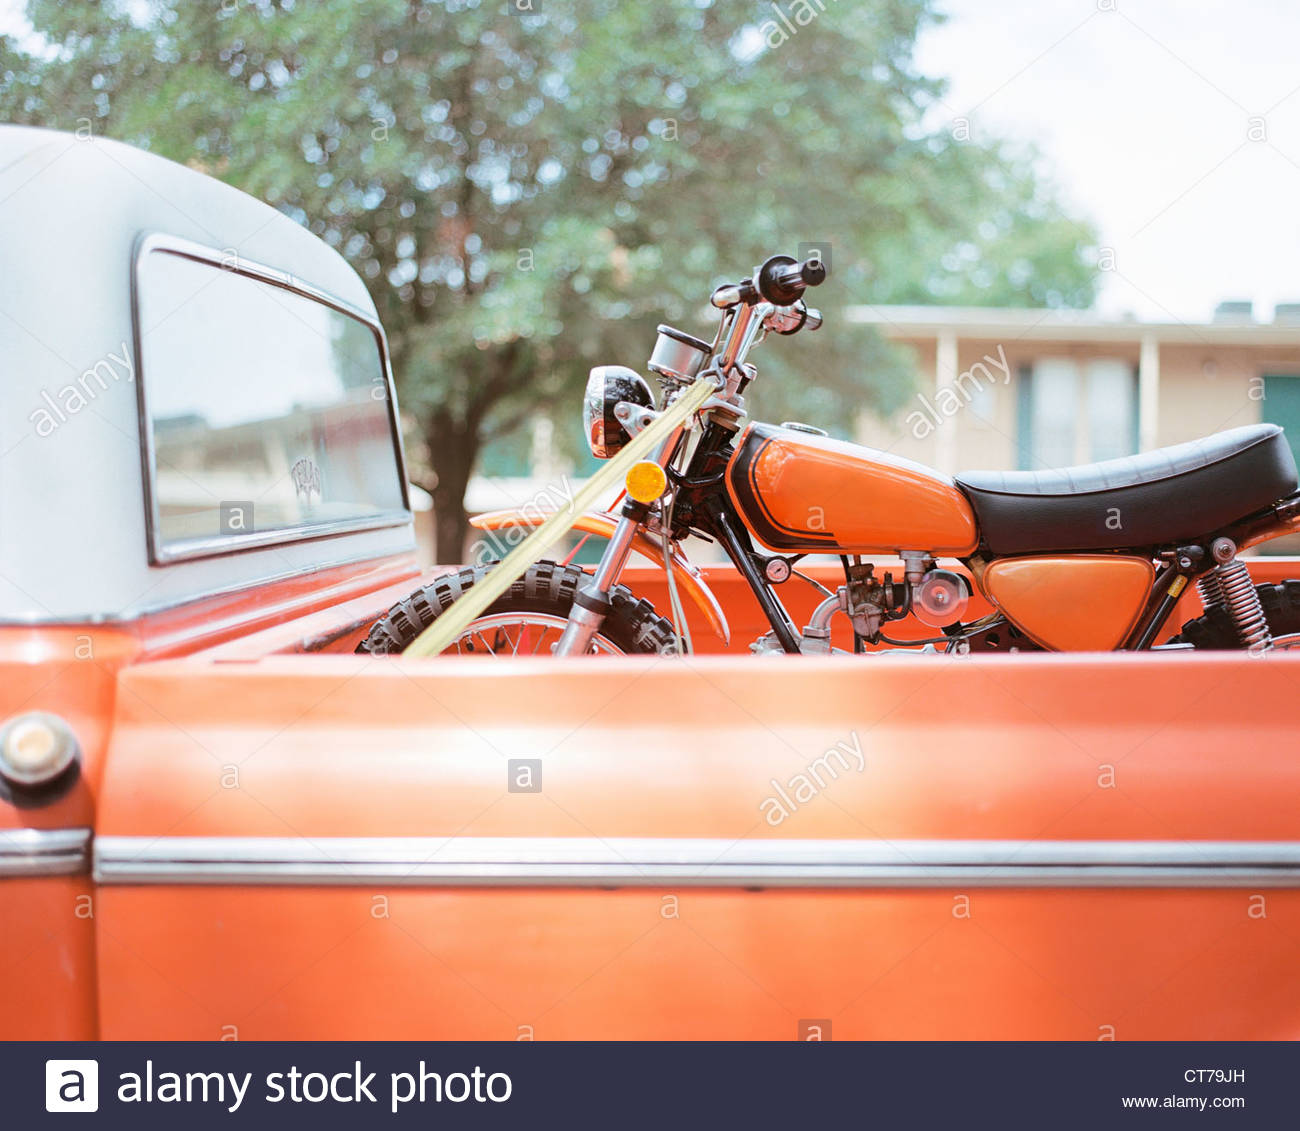 Orange motorcycle in pick up truck - Stock Image